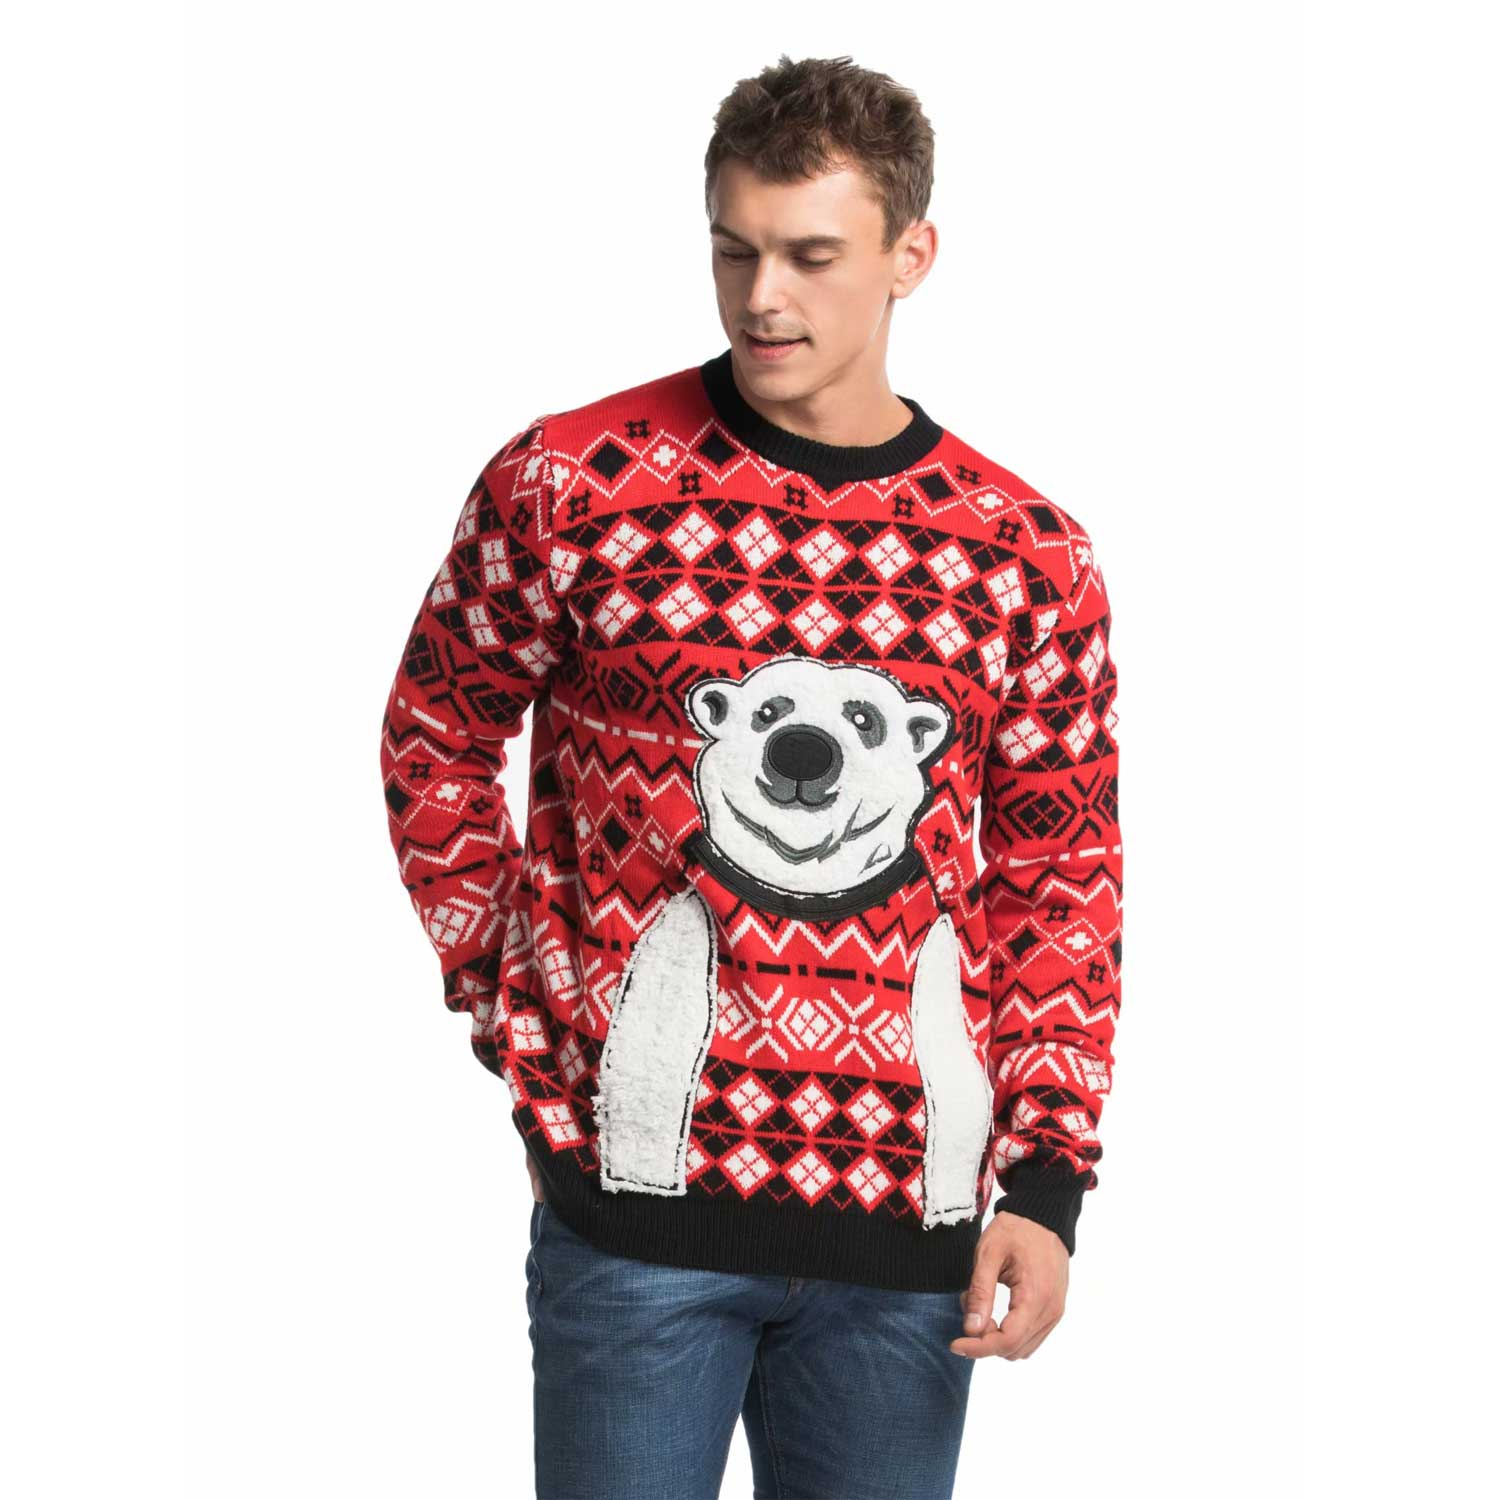 Mens Christmas Sweater Express Your Polar Bear You Look Ugly Today